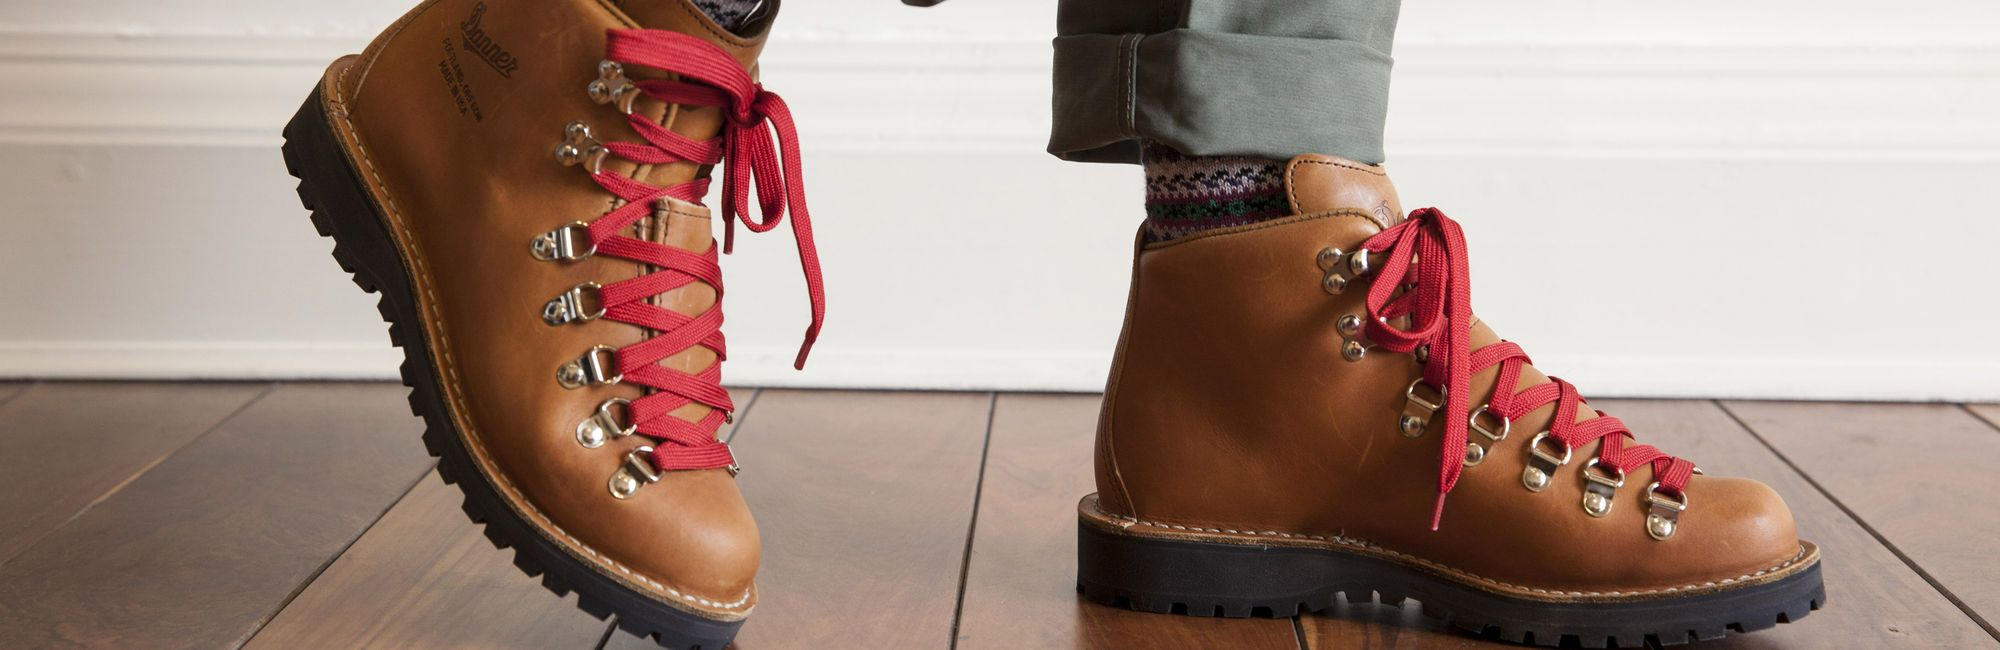 Best Selling Danner Boots - Back in stock